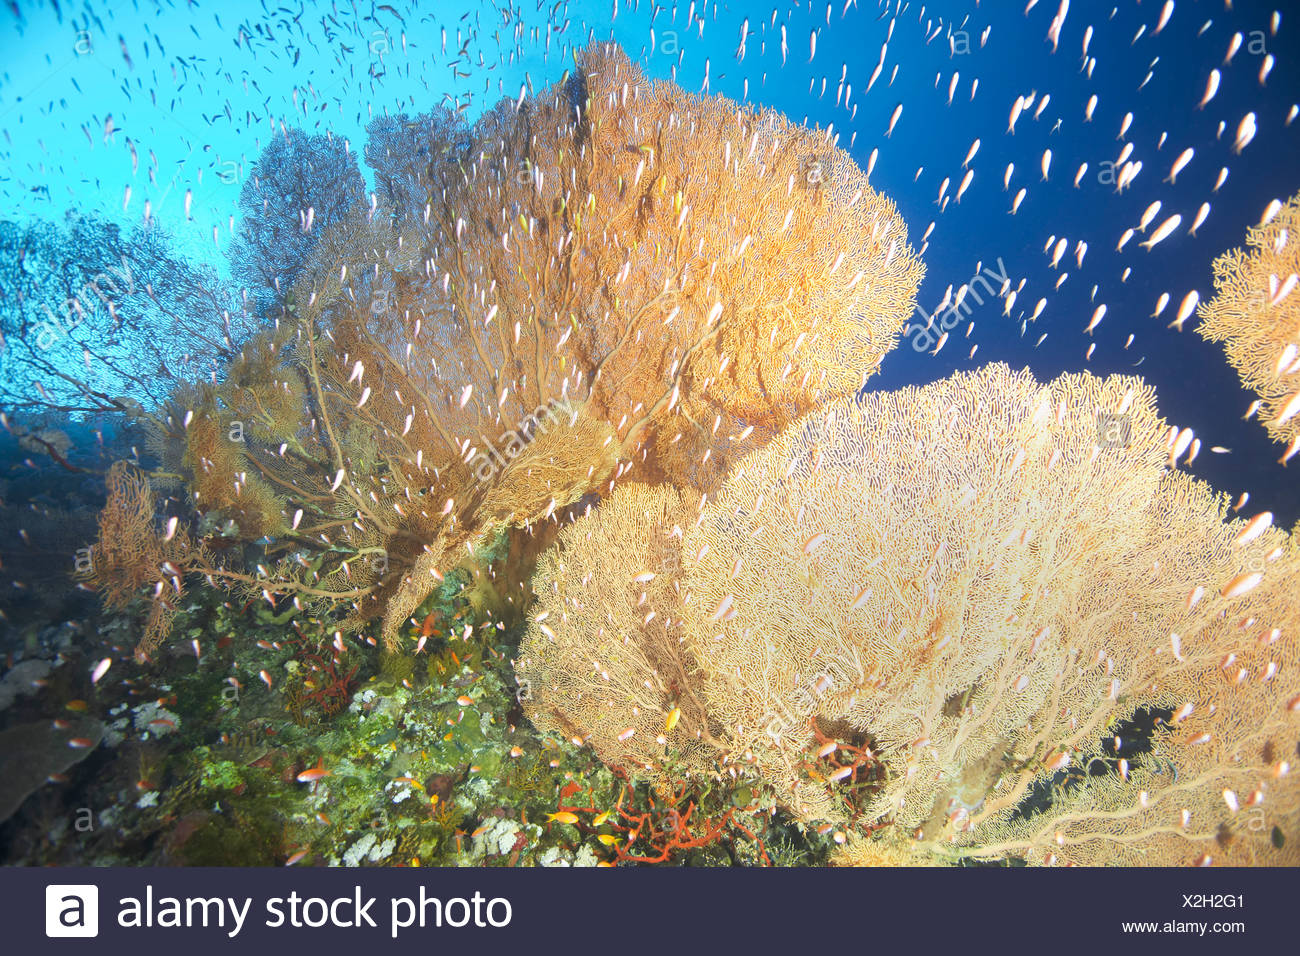 Giant fan coral - Stock Image